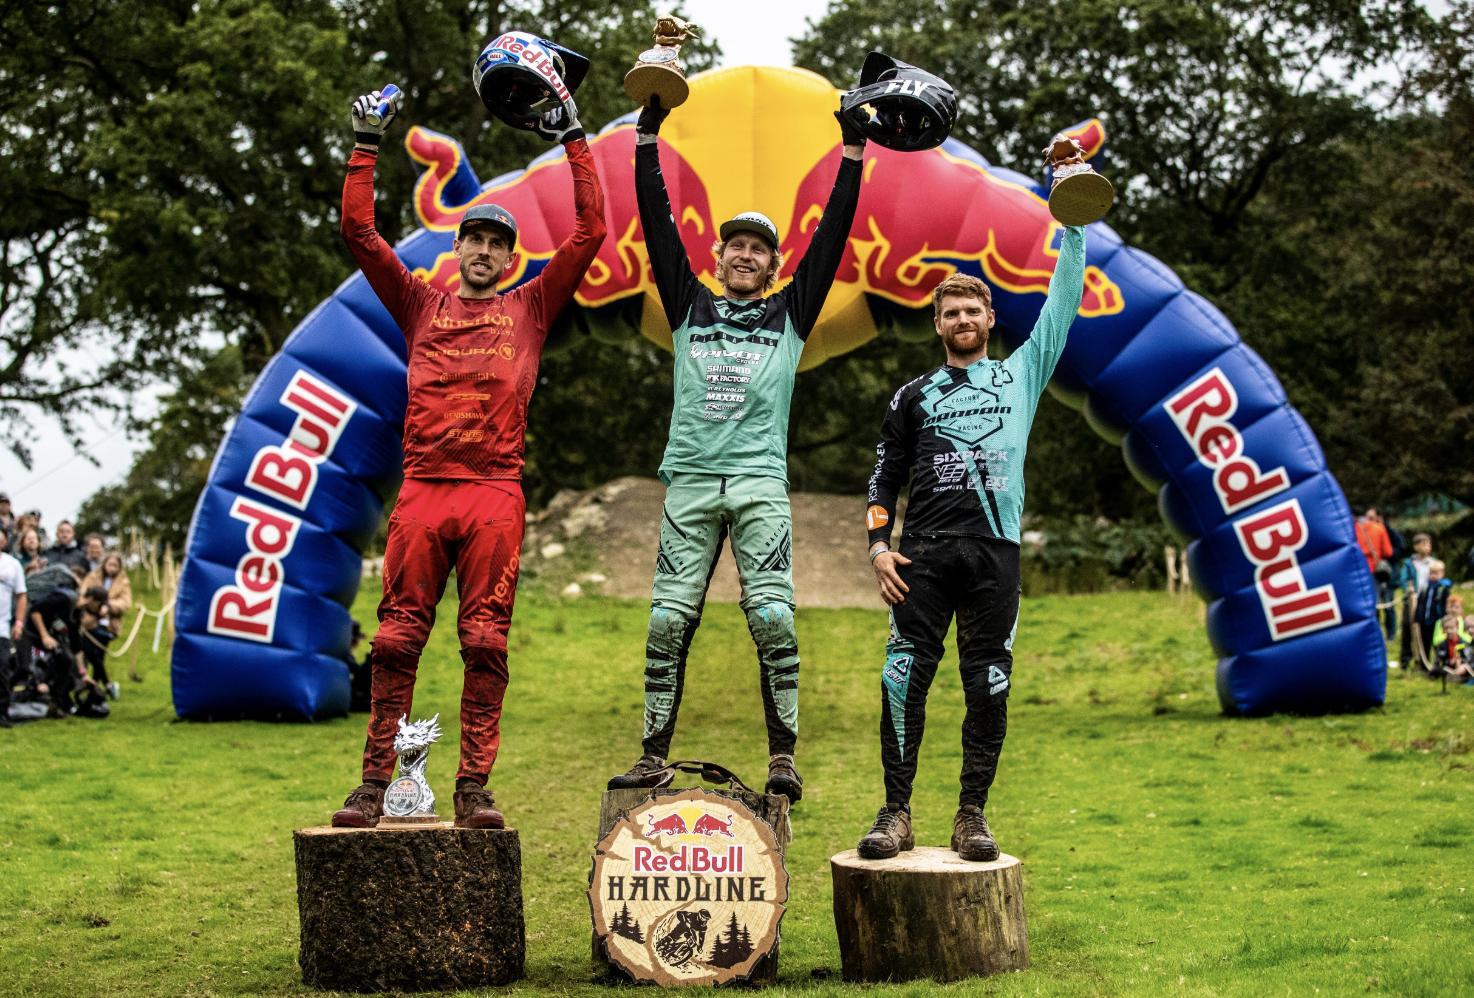 Bernard Kerr Makes History at Red Bull Hardline